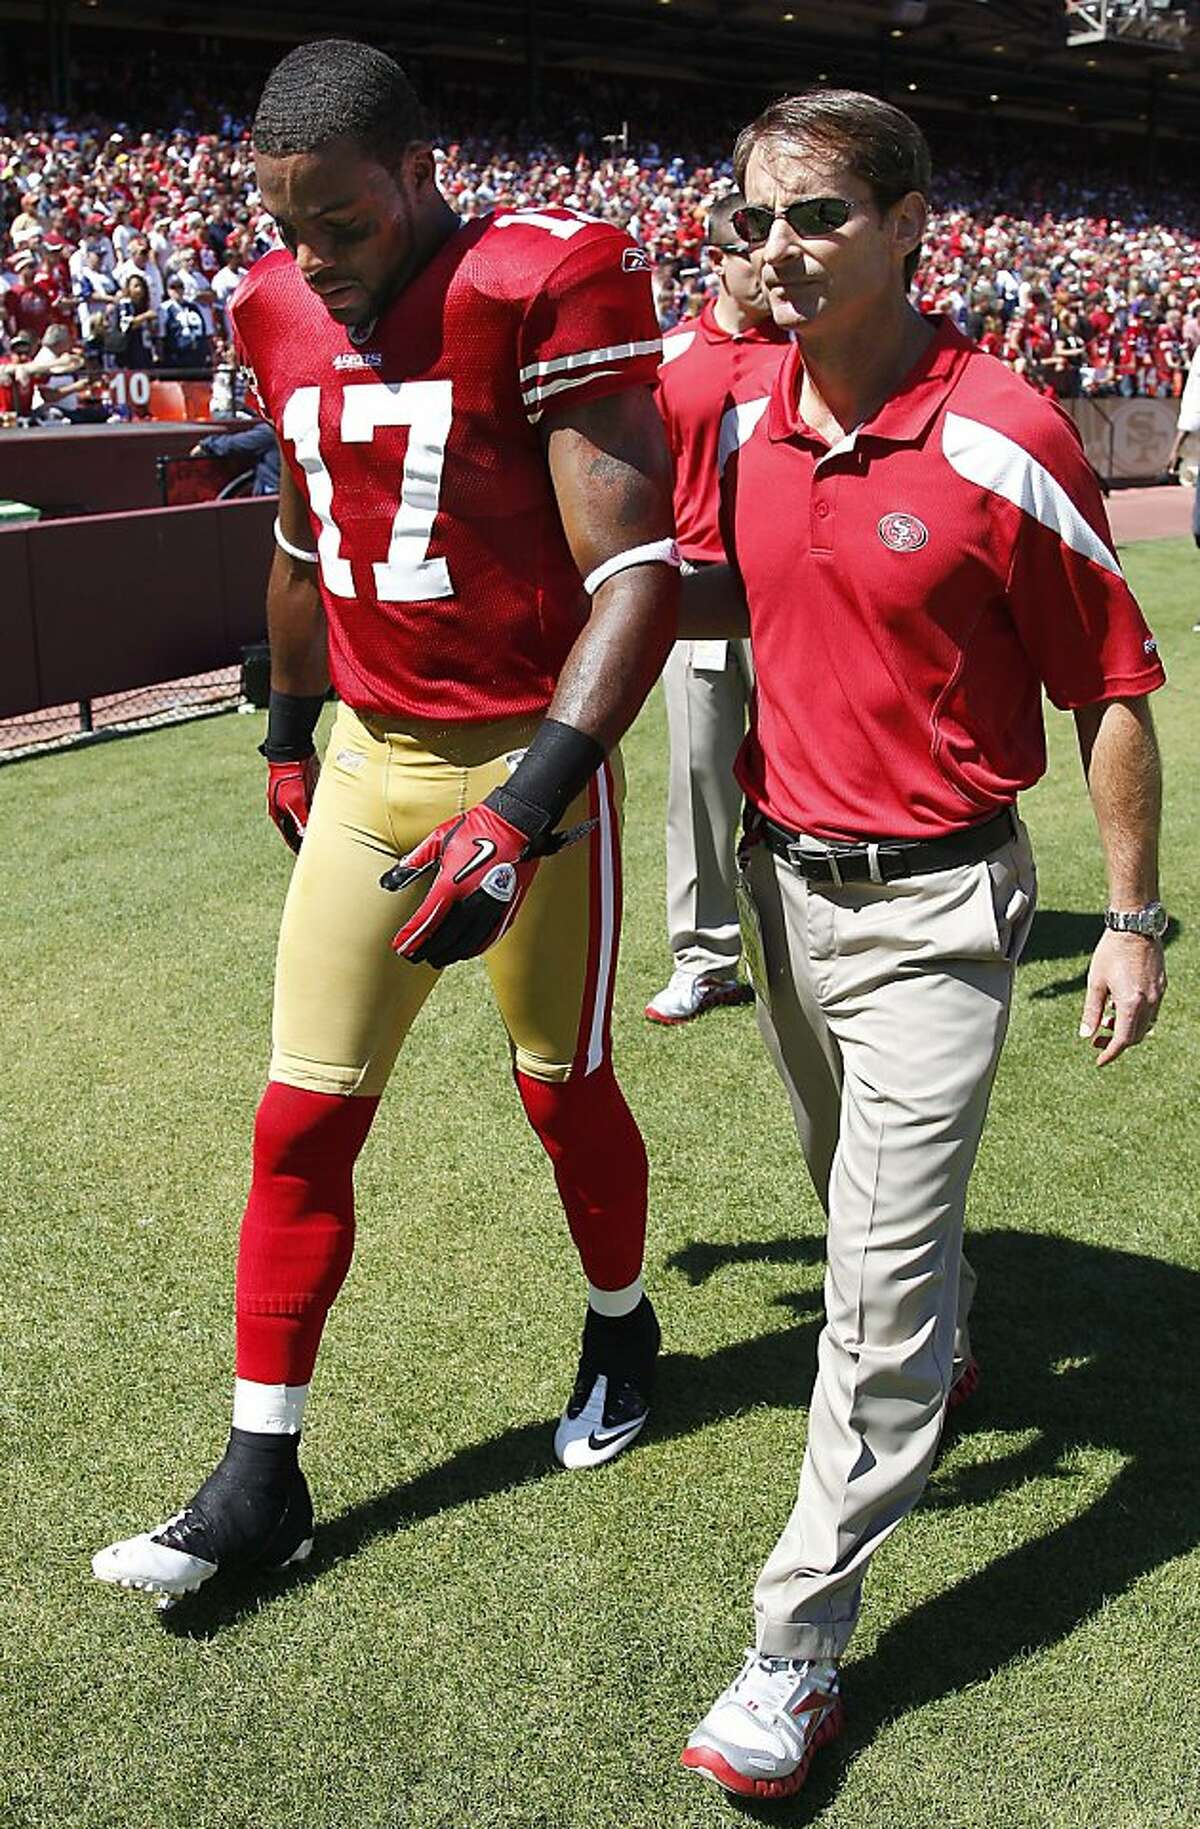 FILE - This Sept.. 18, 2011 file photo shows San Francisco 49ers wide receiver Braylon Edwards (17) being escorted off the field after being injured in the first half of an NFL football game against the Dallas Cowboys, in San Francisco. The 49ers have questions in their receiving corps as they hit the road for the first time ahead of Sunday's game at Cincinnati. (AP Photo/Tony Avelar, File) Ran on: 09-22-2011 Braylon Edwards could be out for about a month with a torn meniscus.